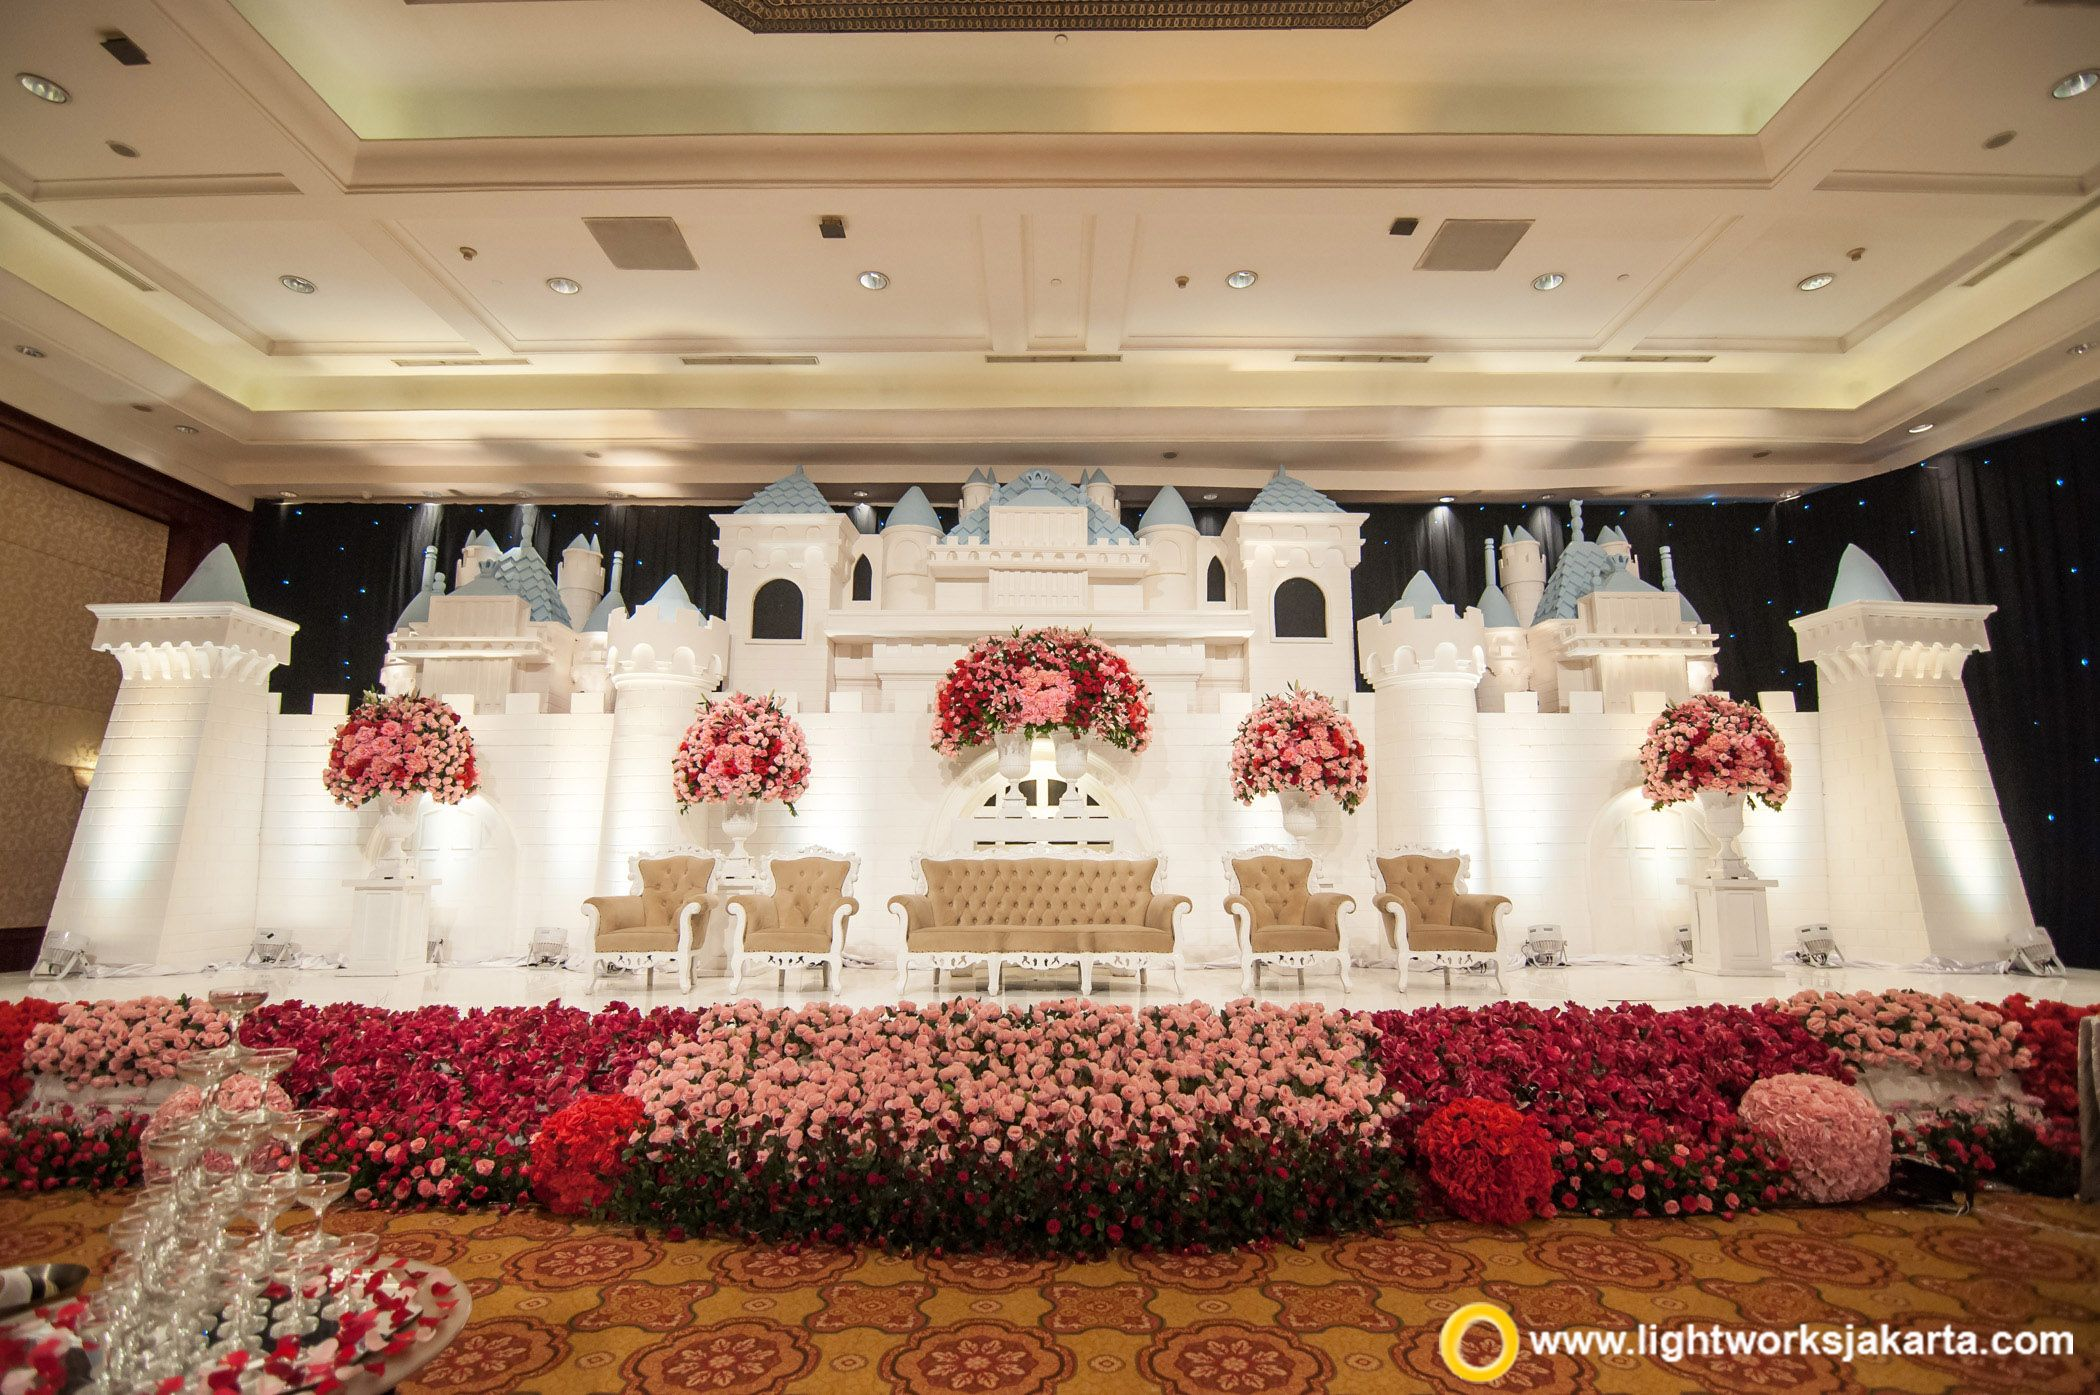 The great palace of love with vica decoration as the decorator and the dome of wedding stage junglespirit